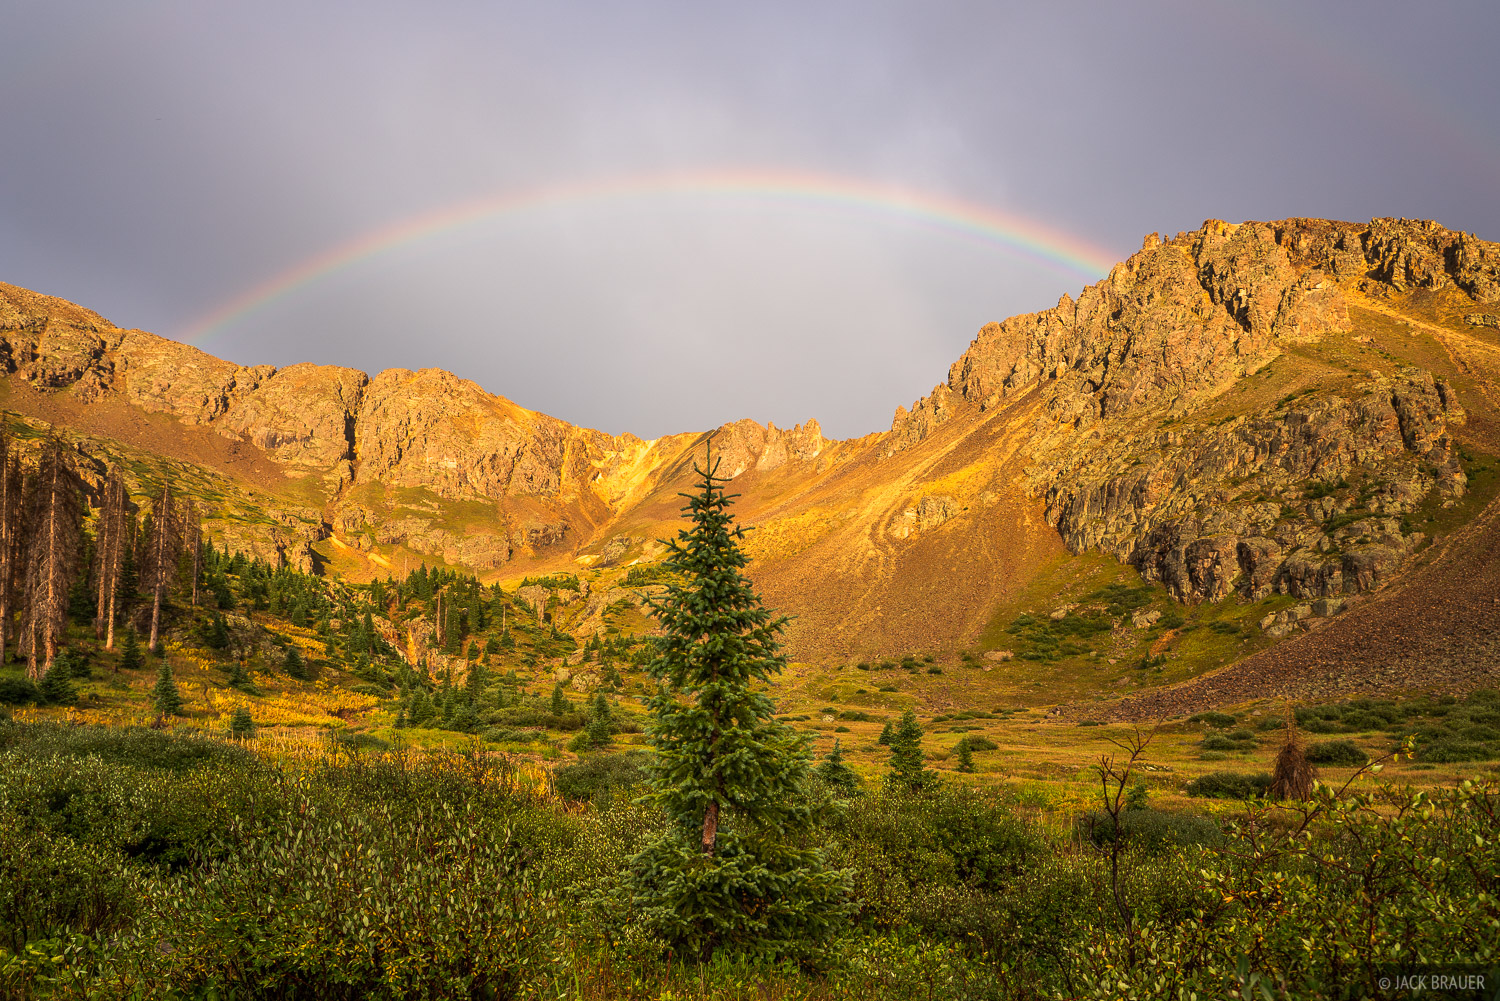 Colorado, Needle Mountains, San Juan Mountains, Weminuche Wilderness, rainbow, sunset, photo